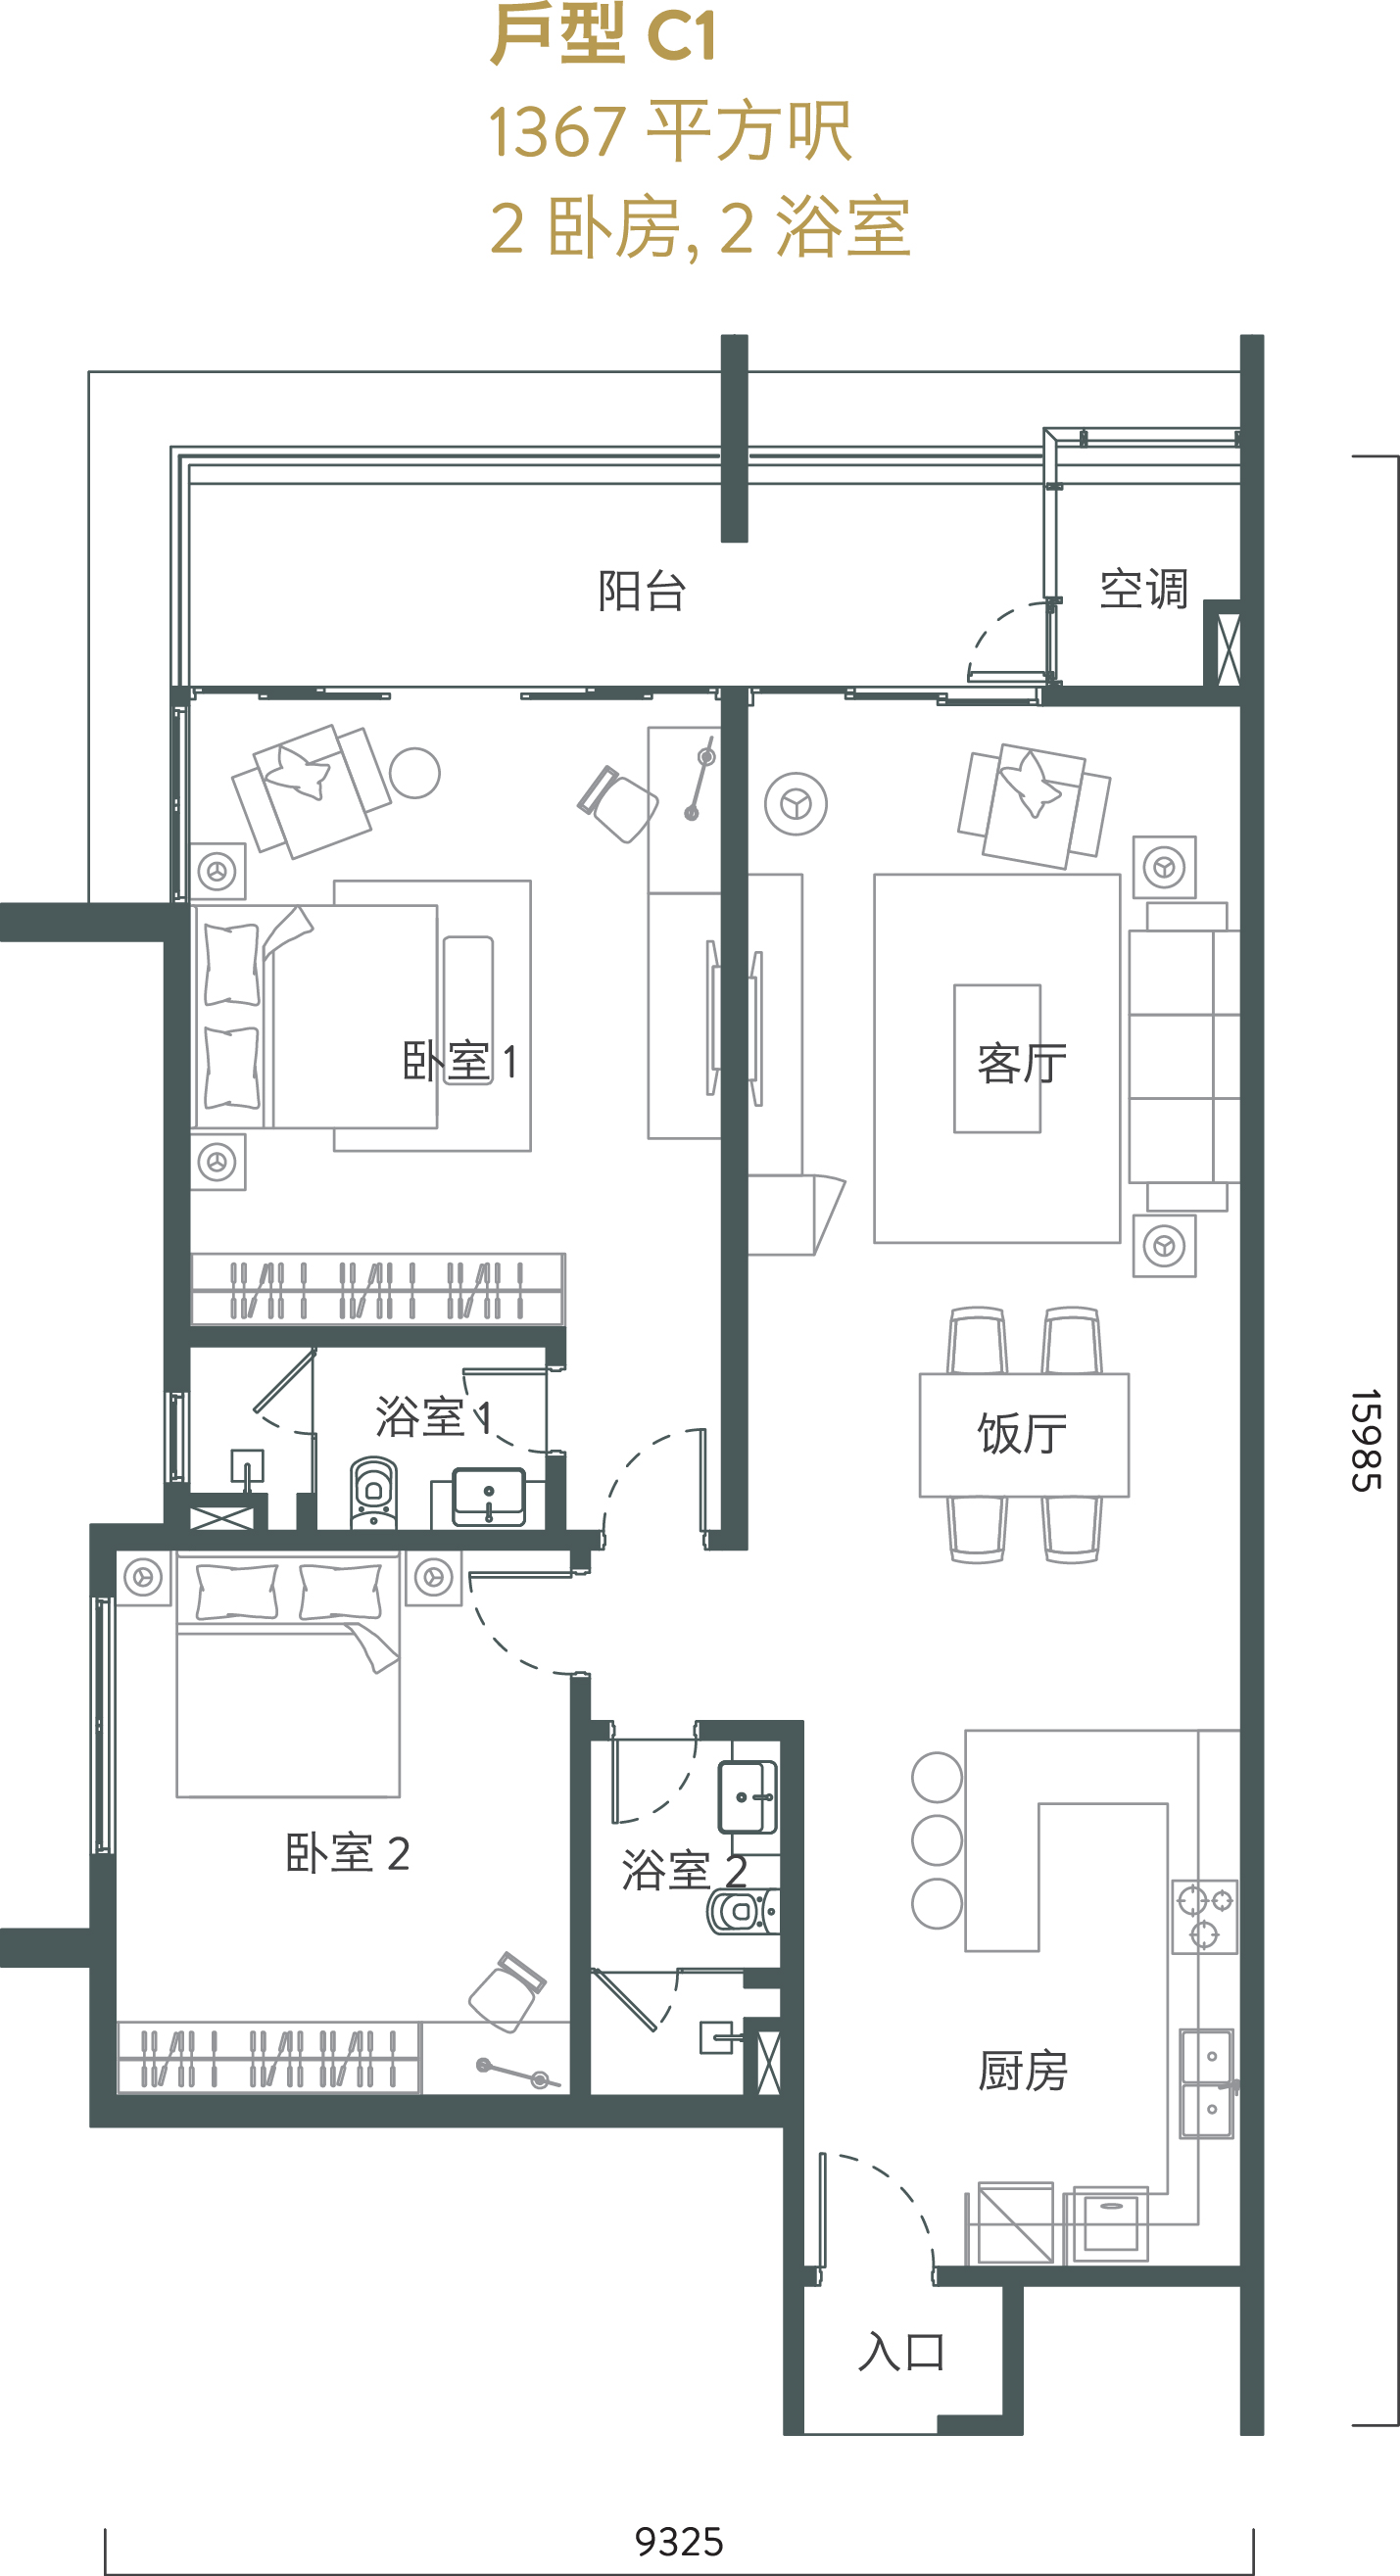 Quill Residences C1單位